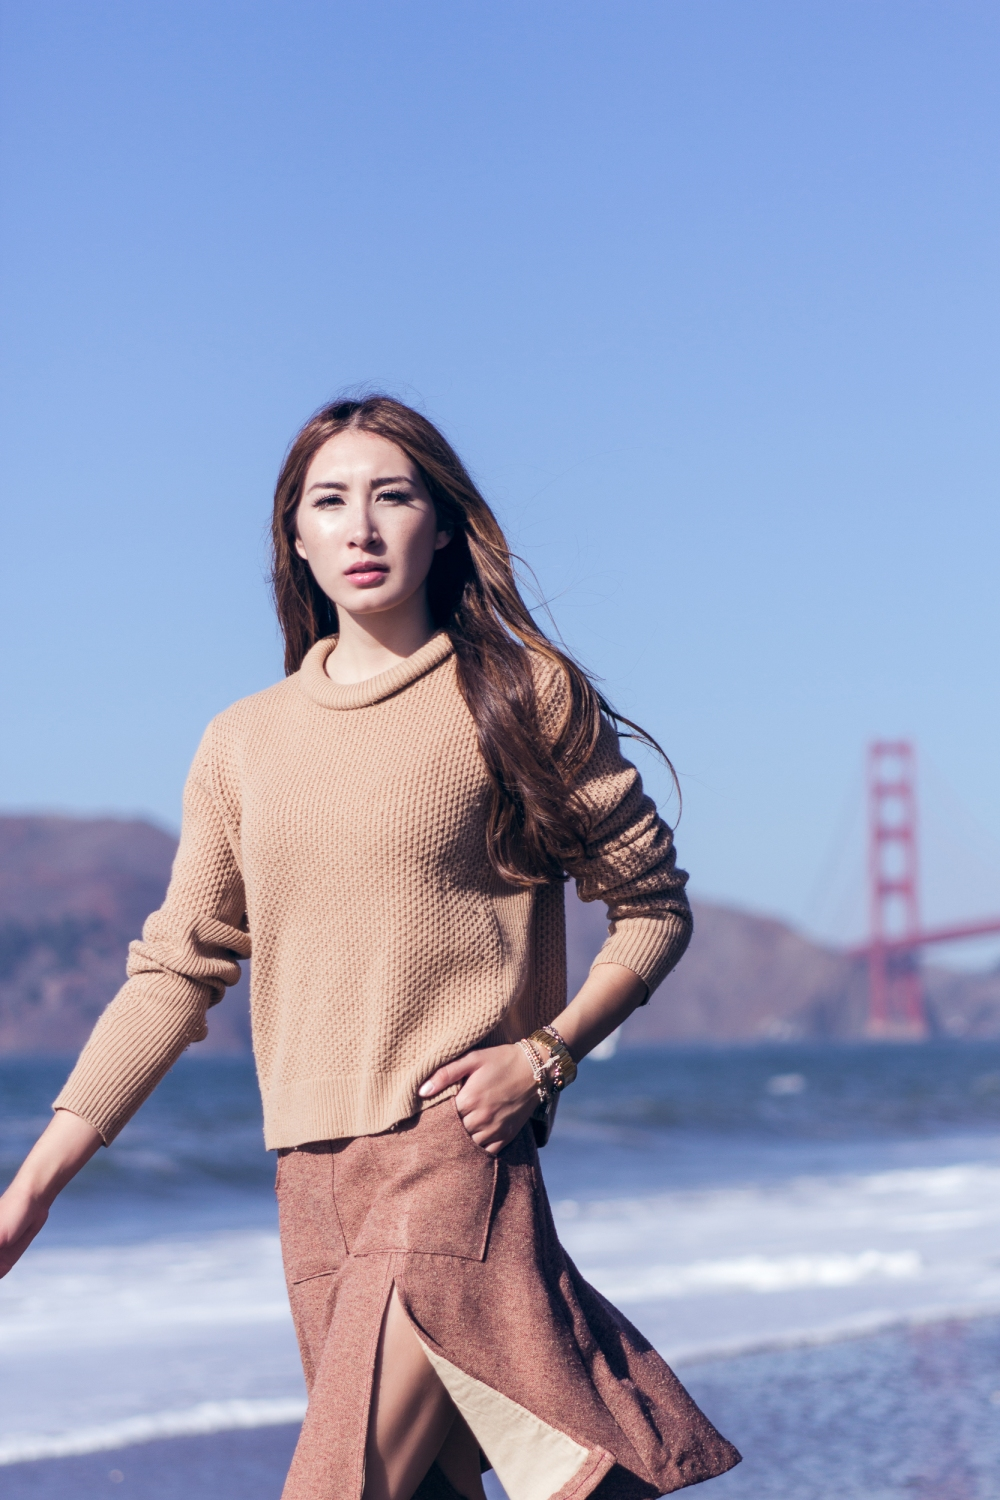 California Winter Golden Gate Bridge Alyssa Nicole Aline Skirt 2